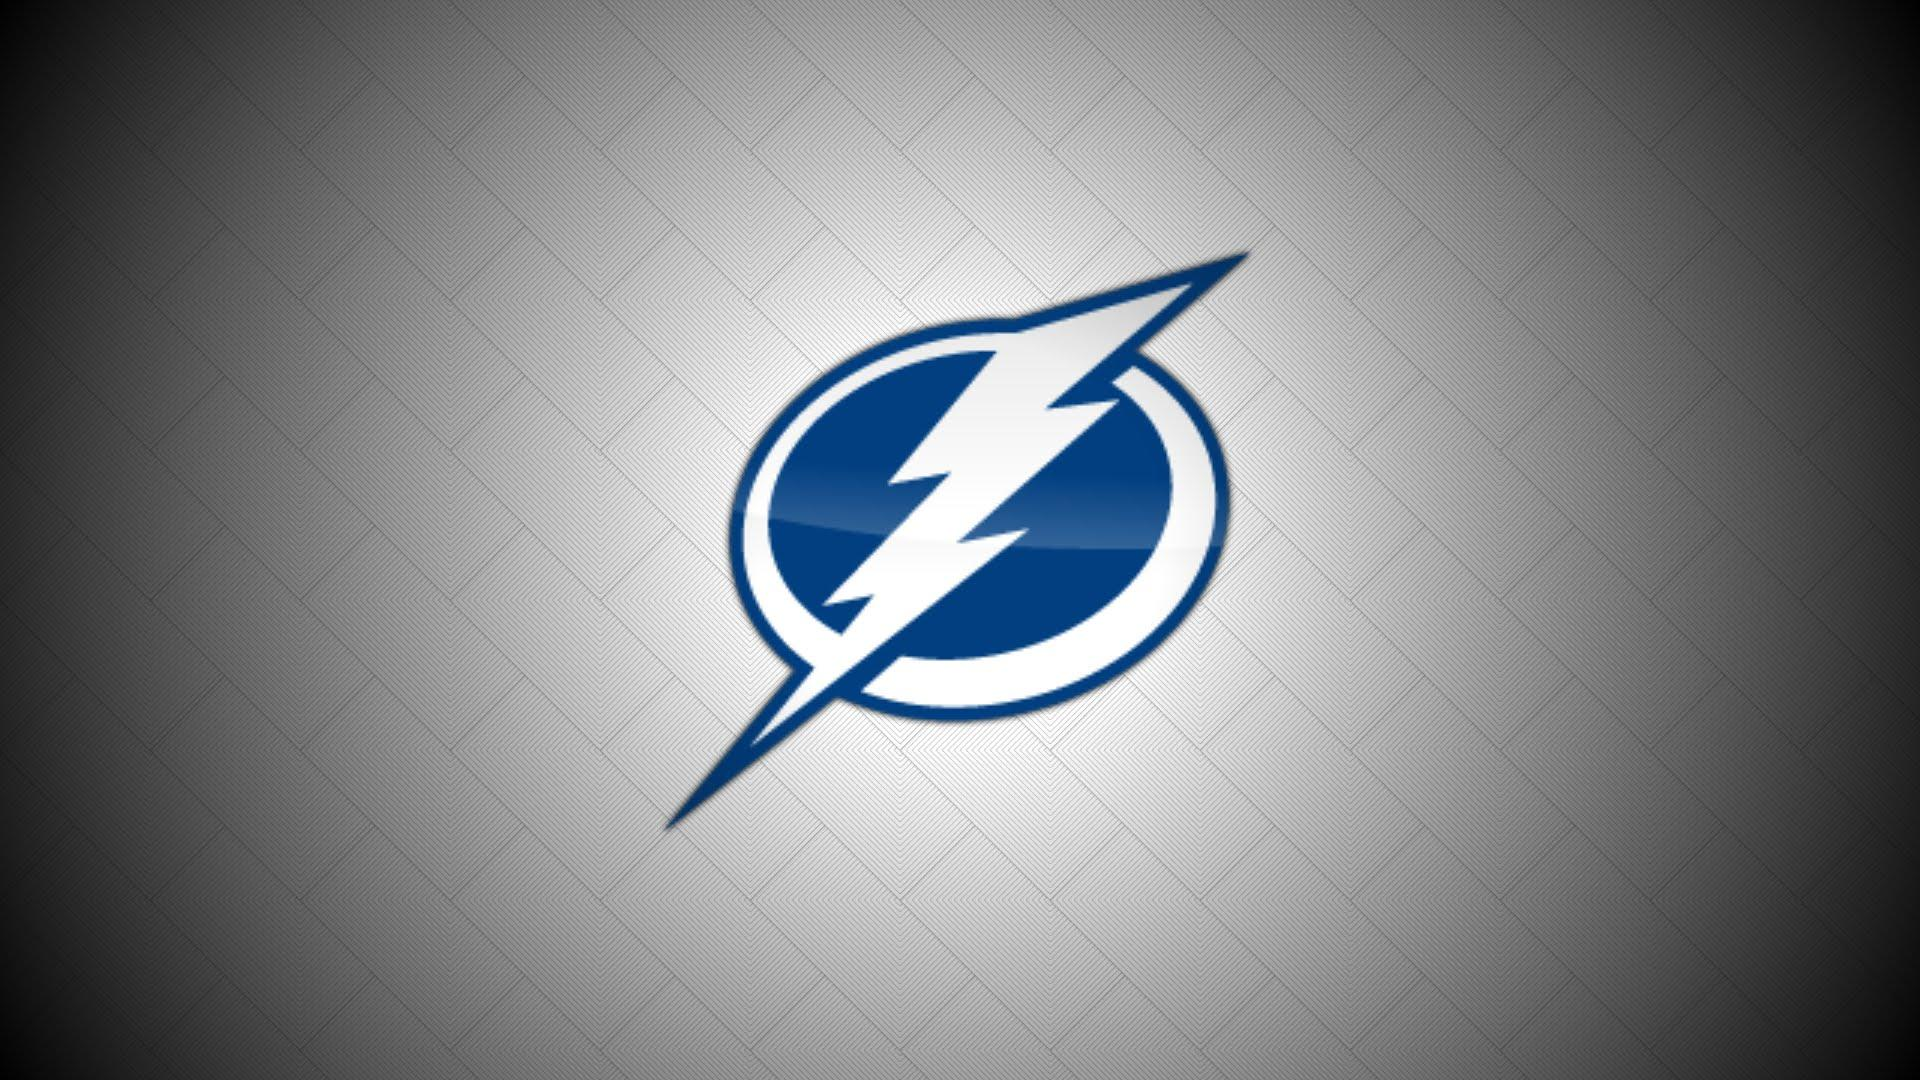 Tampa Bay Lightning Wallpapers 2015